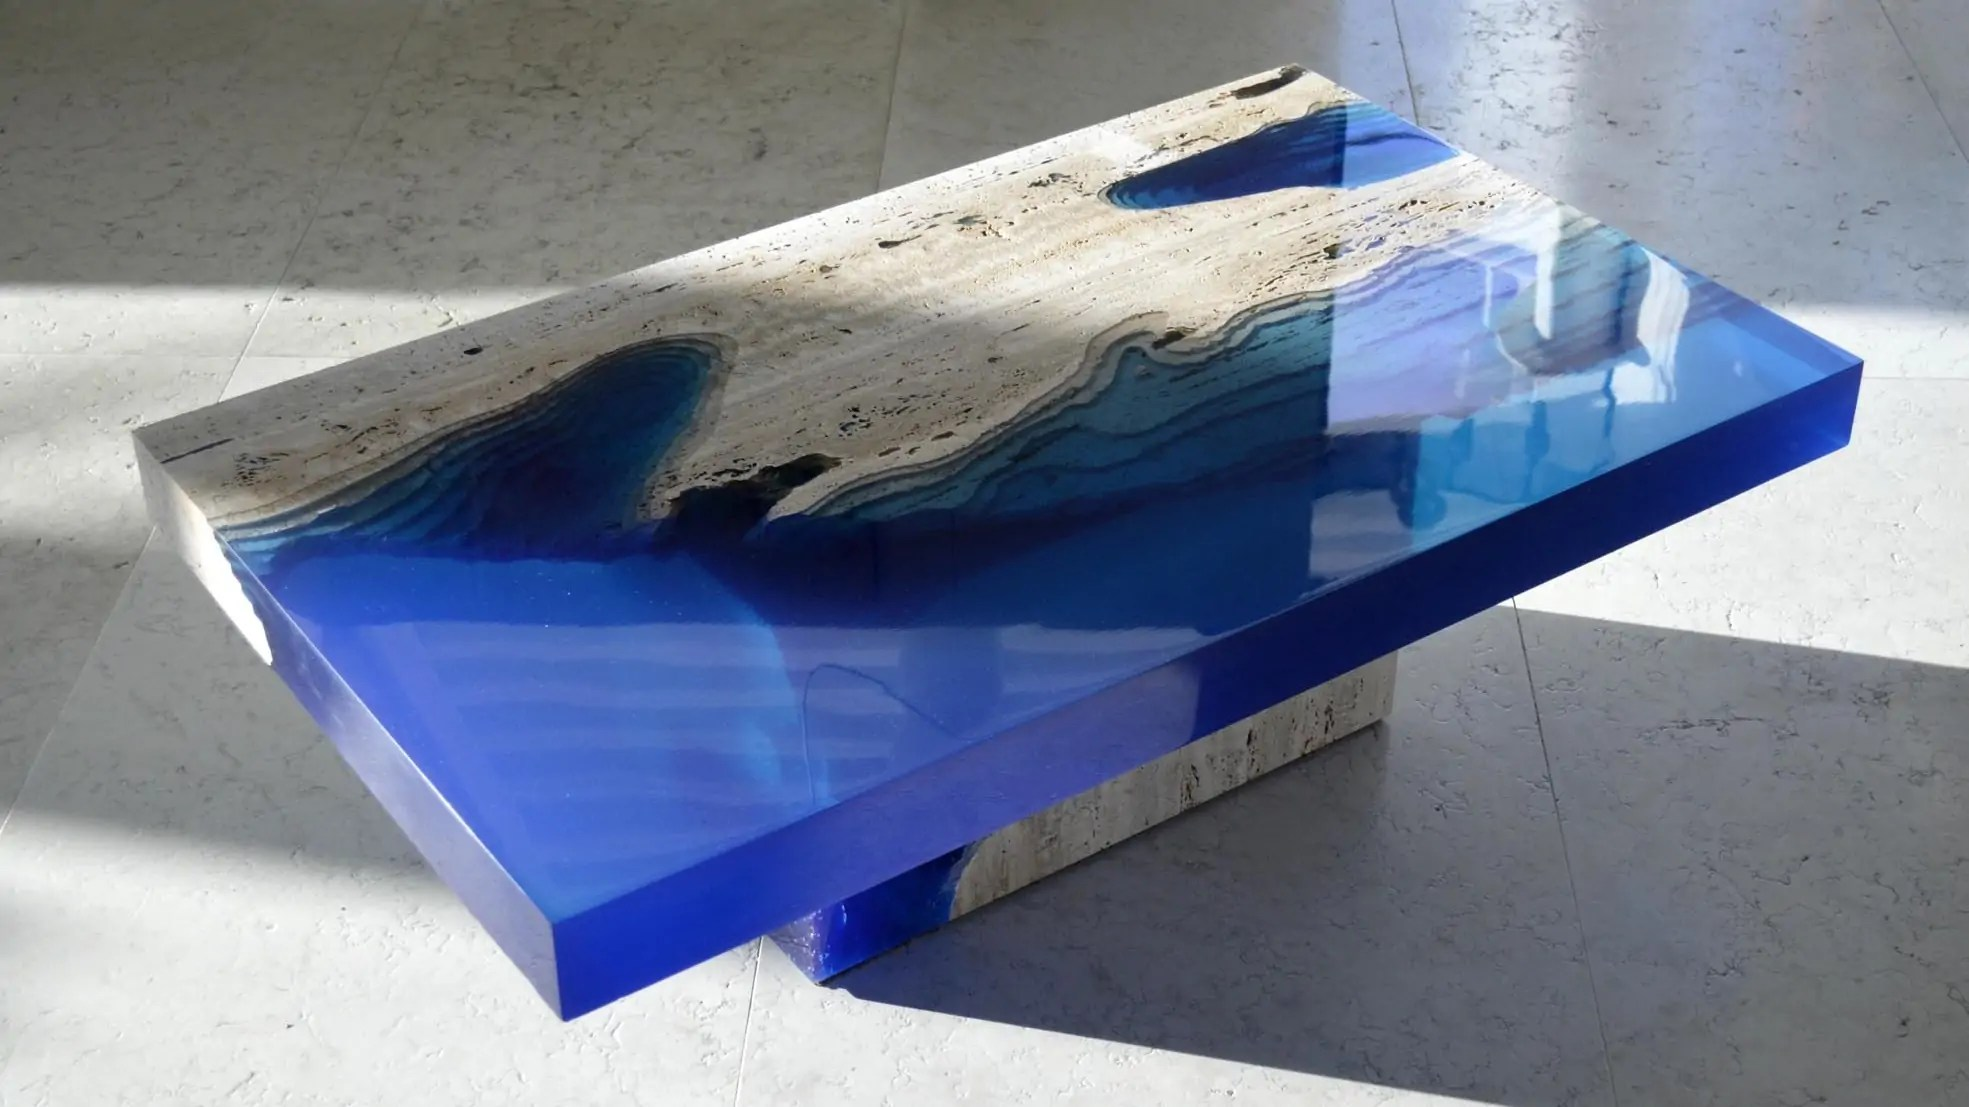 Resin Couchtisch The Lagoon Table Brings A Seascape Of Marble And Resin